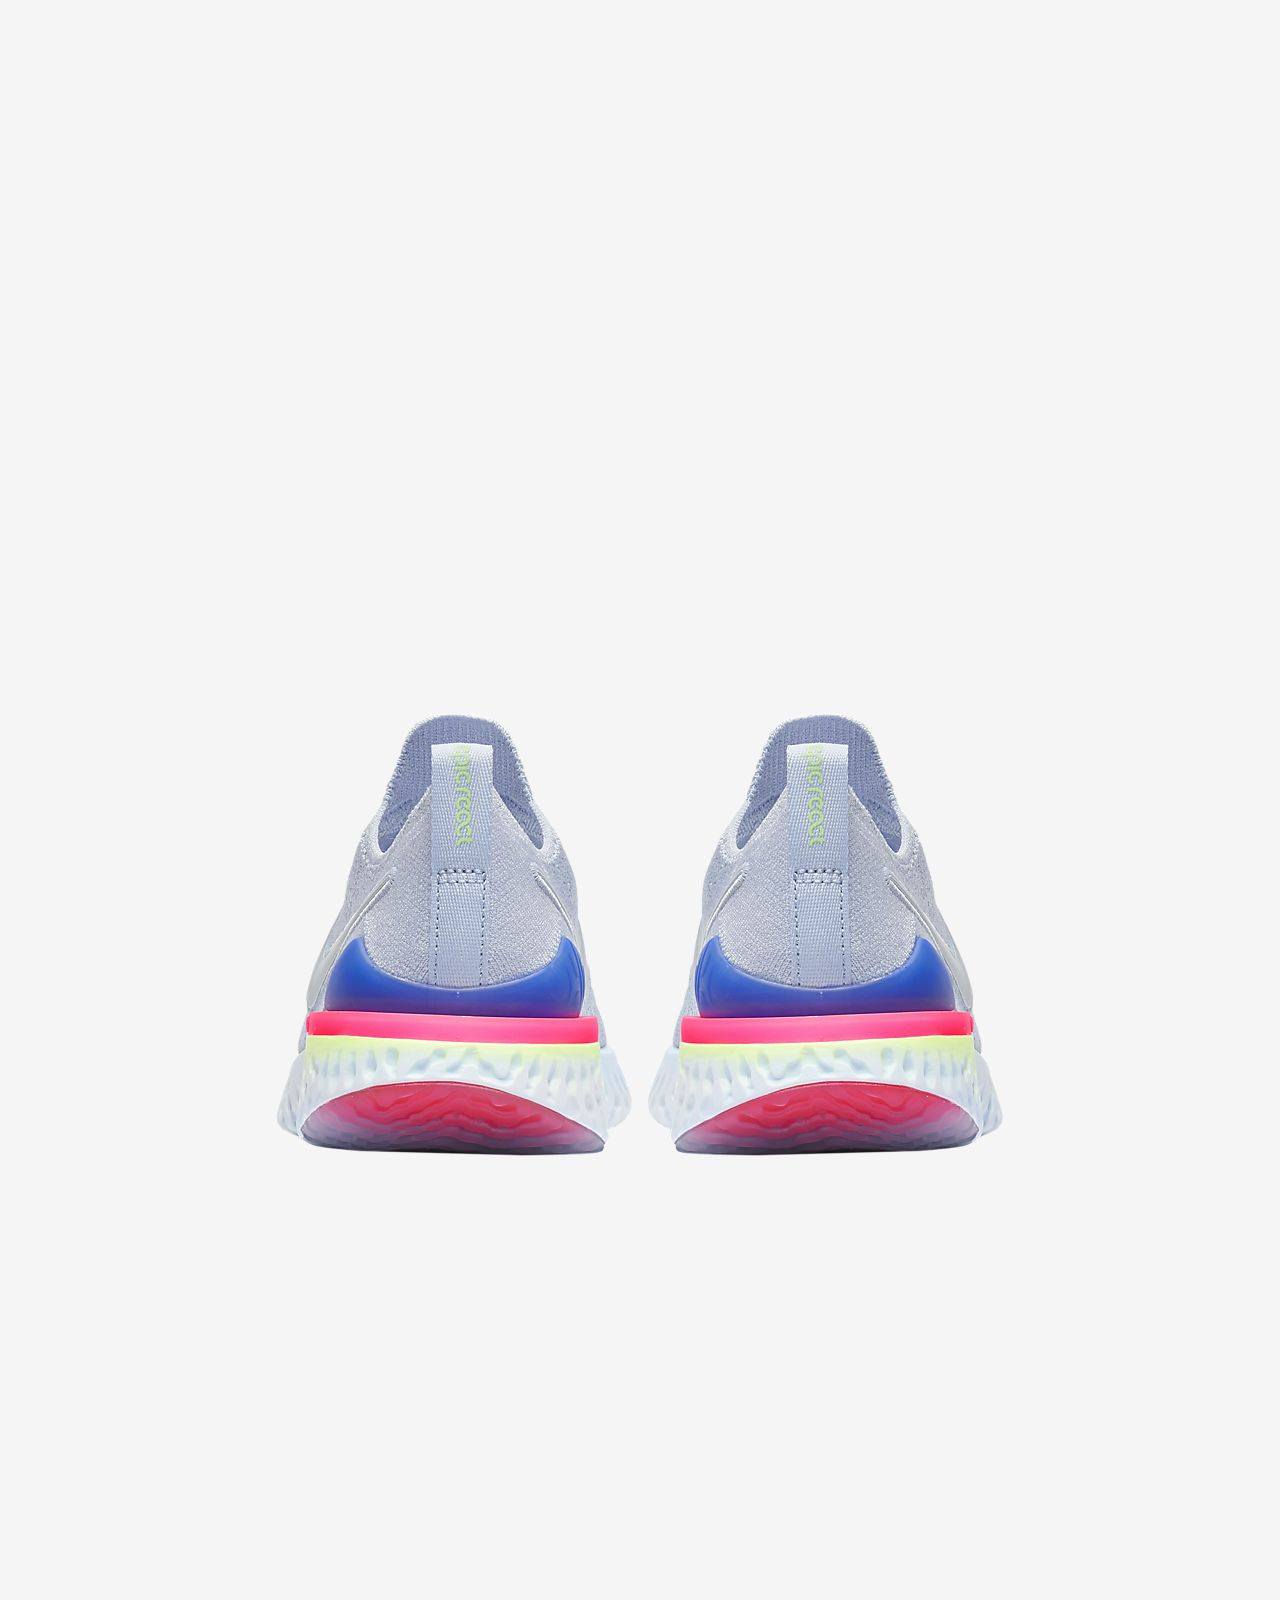 new arrival 9ef97 01f1d ... Nike Epic React Flyknit 2 Big Kids  Running Shoe